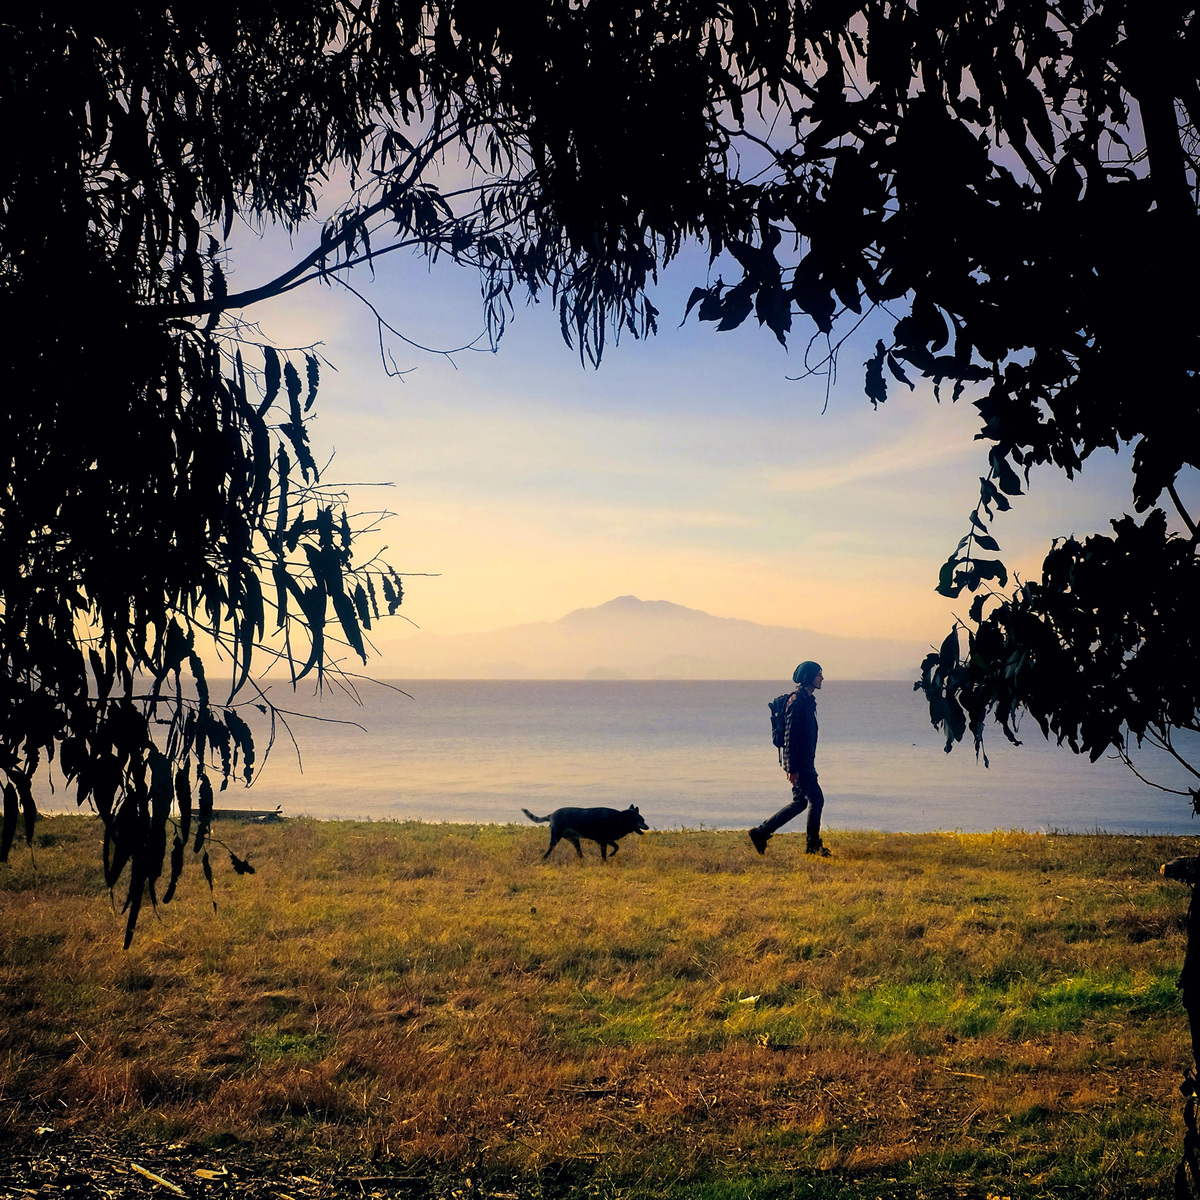 View of a hiker with a dog near the shore at Point Pinole Regional Shoreline, California, 2017. Visible in the distance, across San Francisco Bay, is the peak of Mount Tamalpais above the fog.